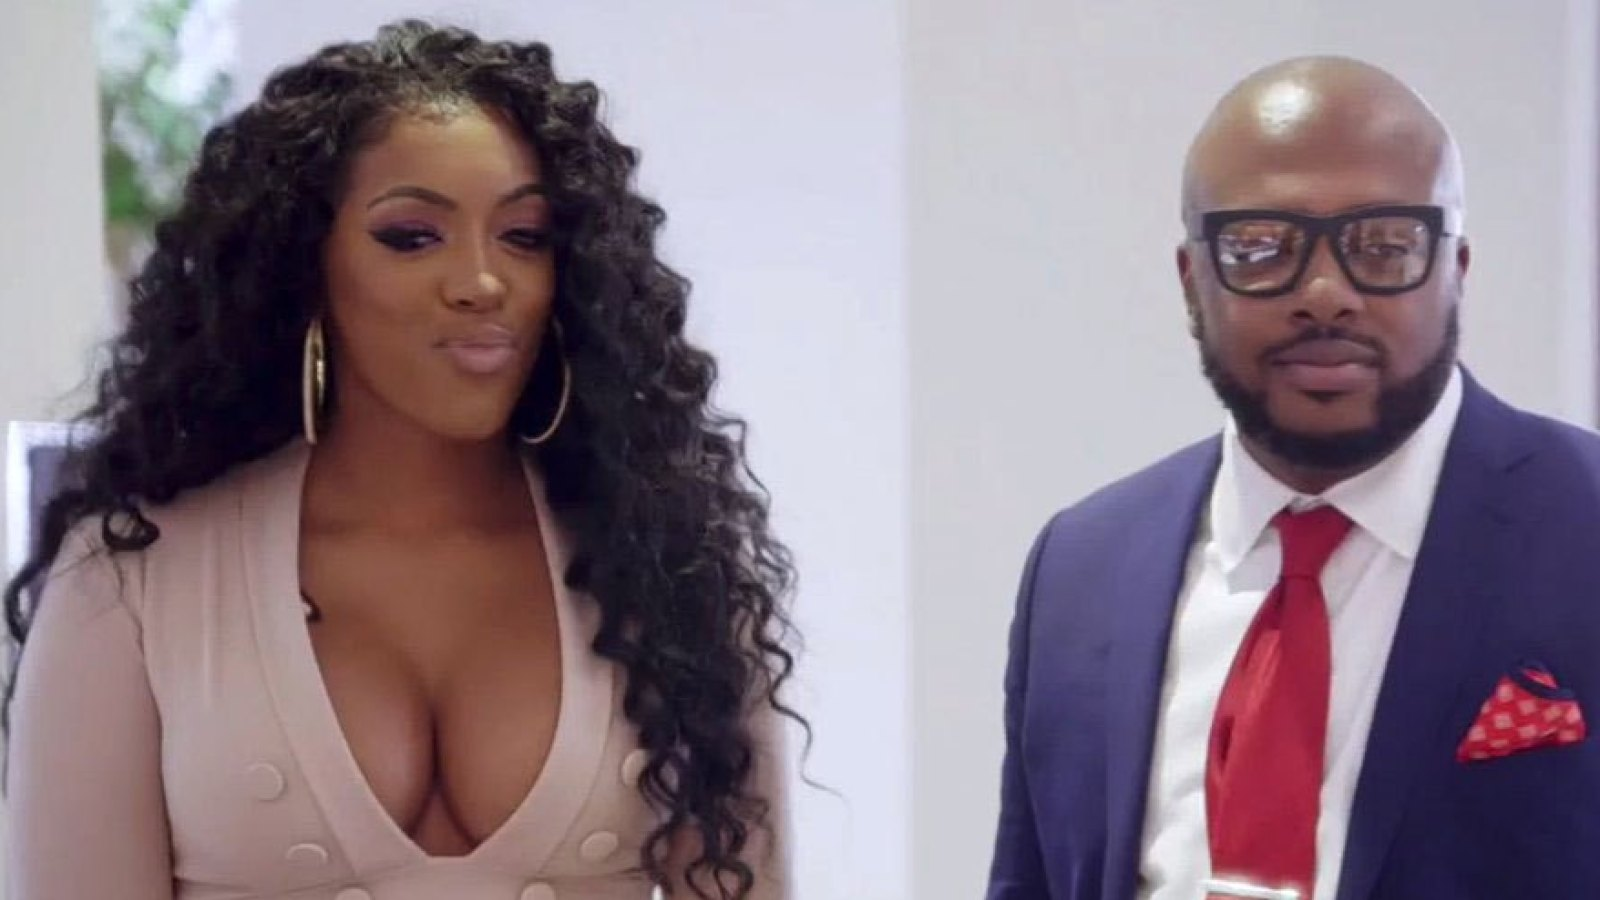 Porsha Williams Tries To Convince Fans That Baby PJ Looks Like Her As Well, Not Only Like Her Dad, Dennis McKinley - Check Out Baby Porsha In These Throwback Pics